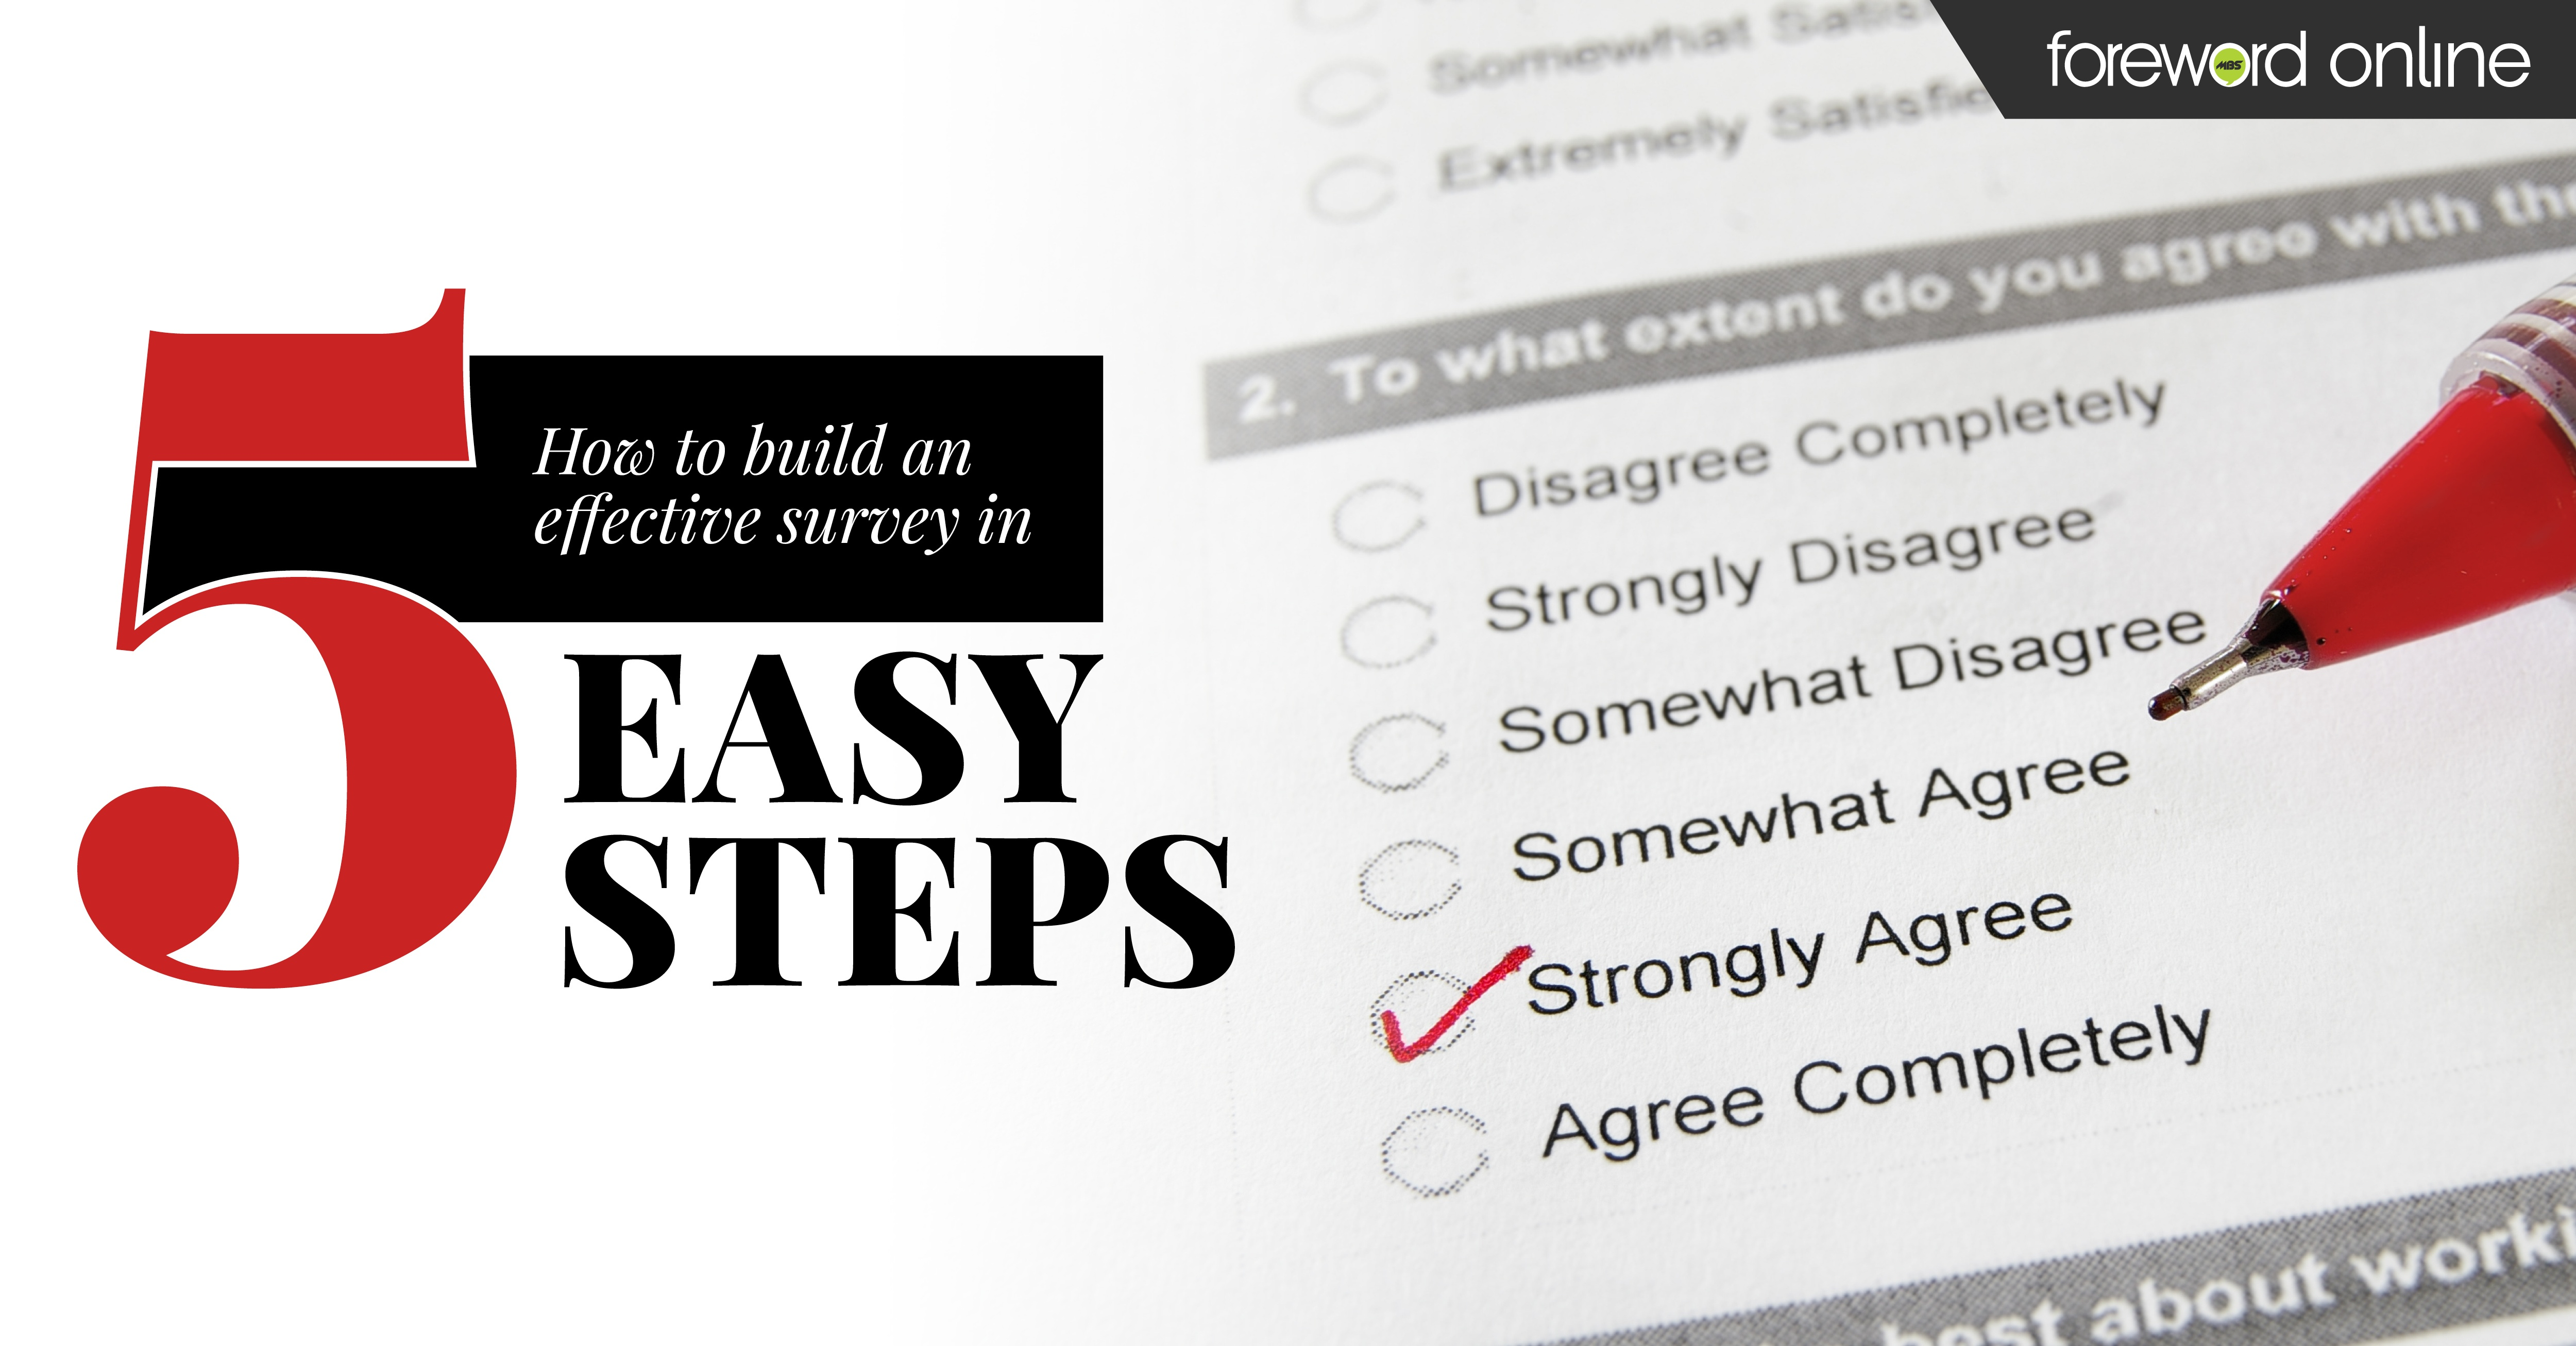 How to Build an Effective Survey in 5 Easy Steps